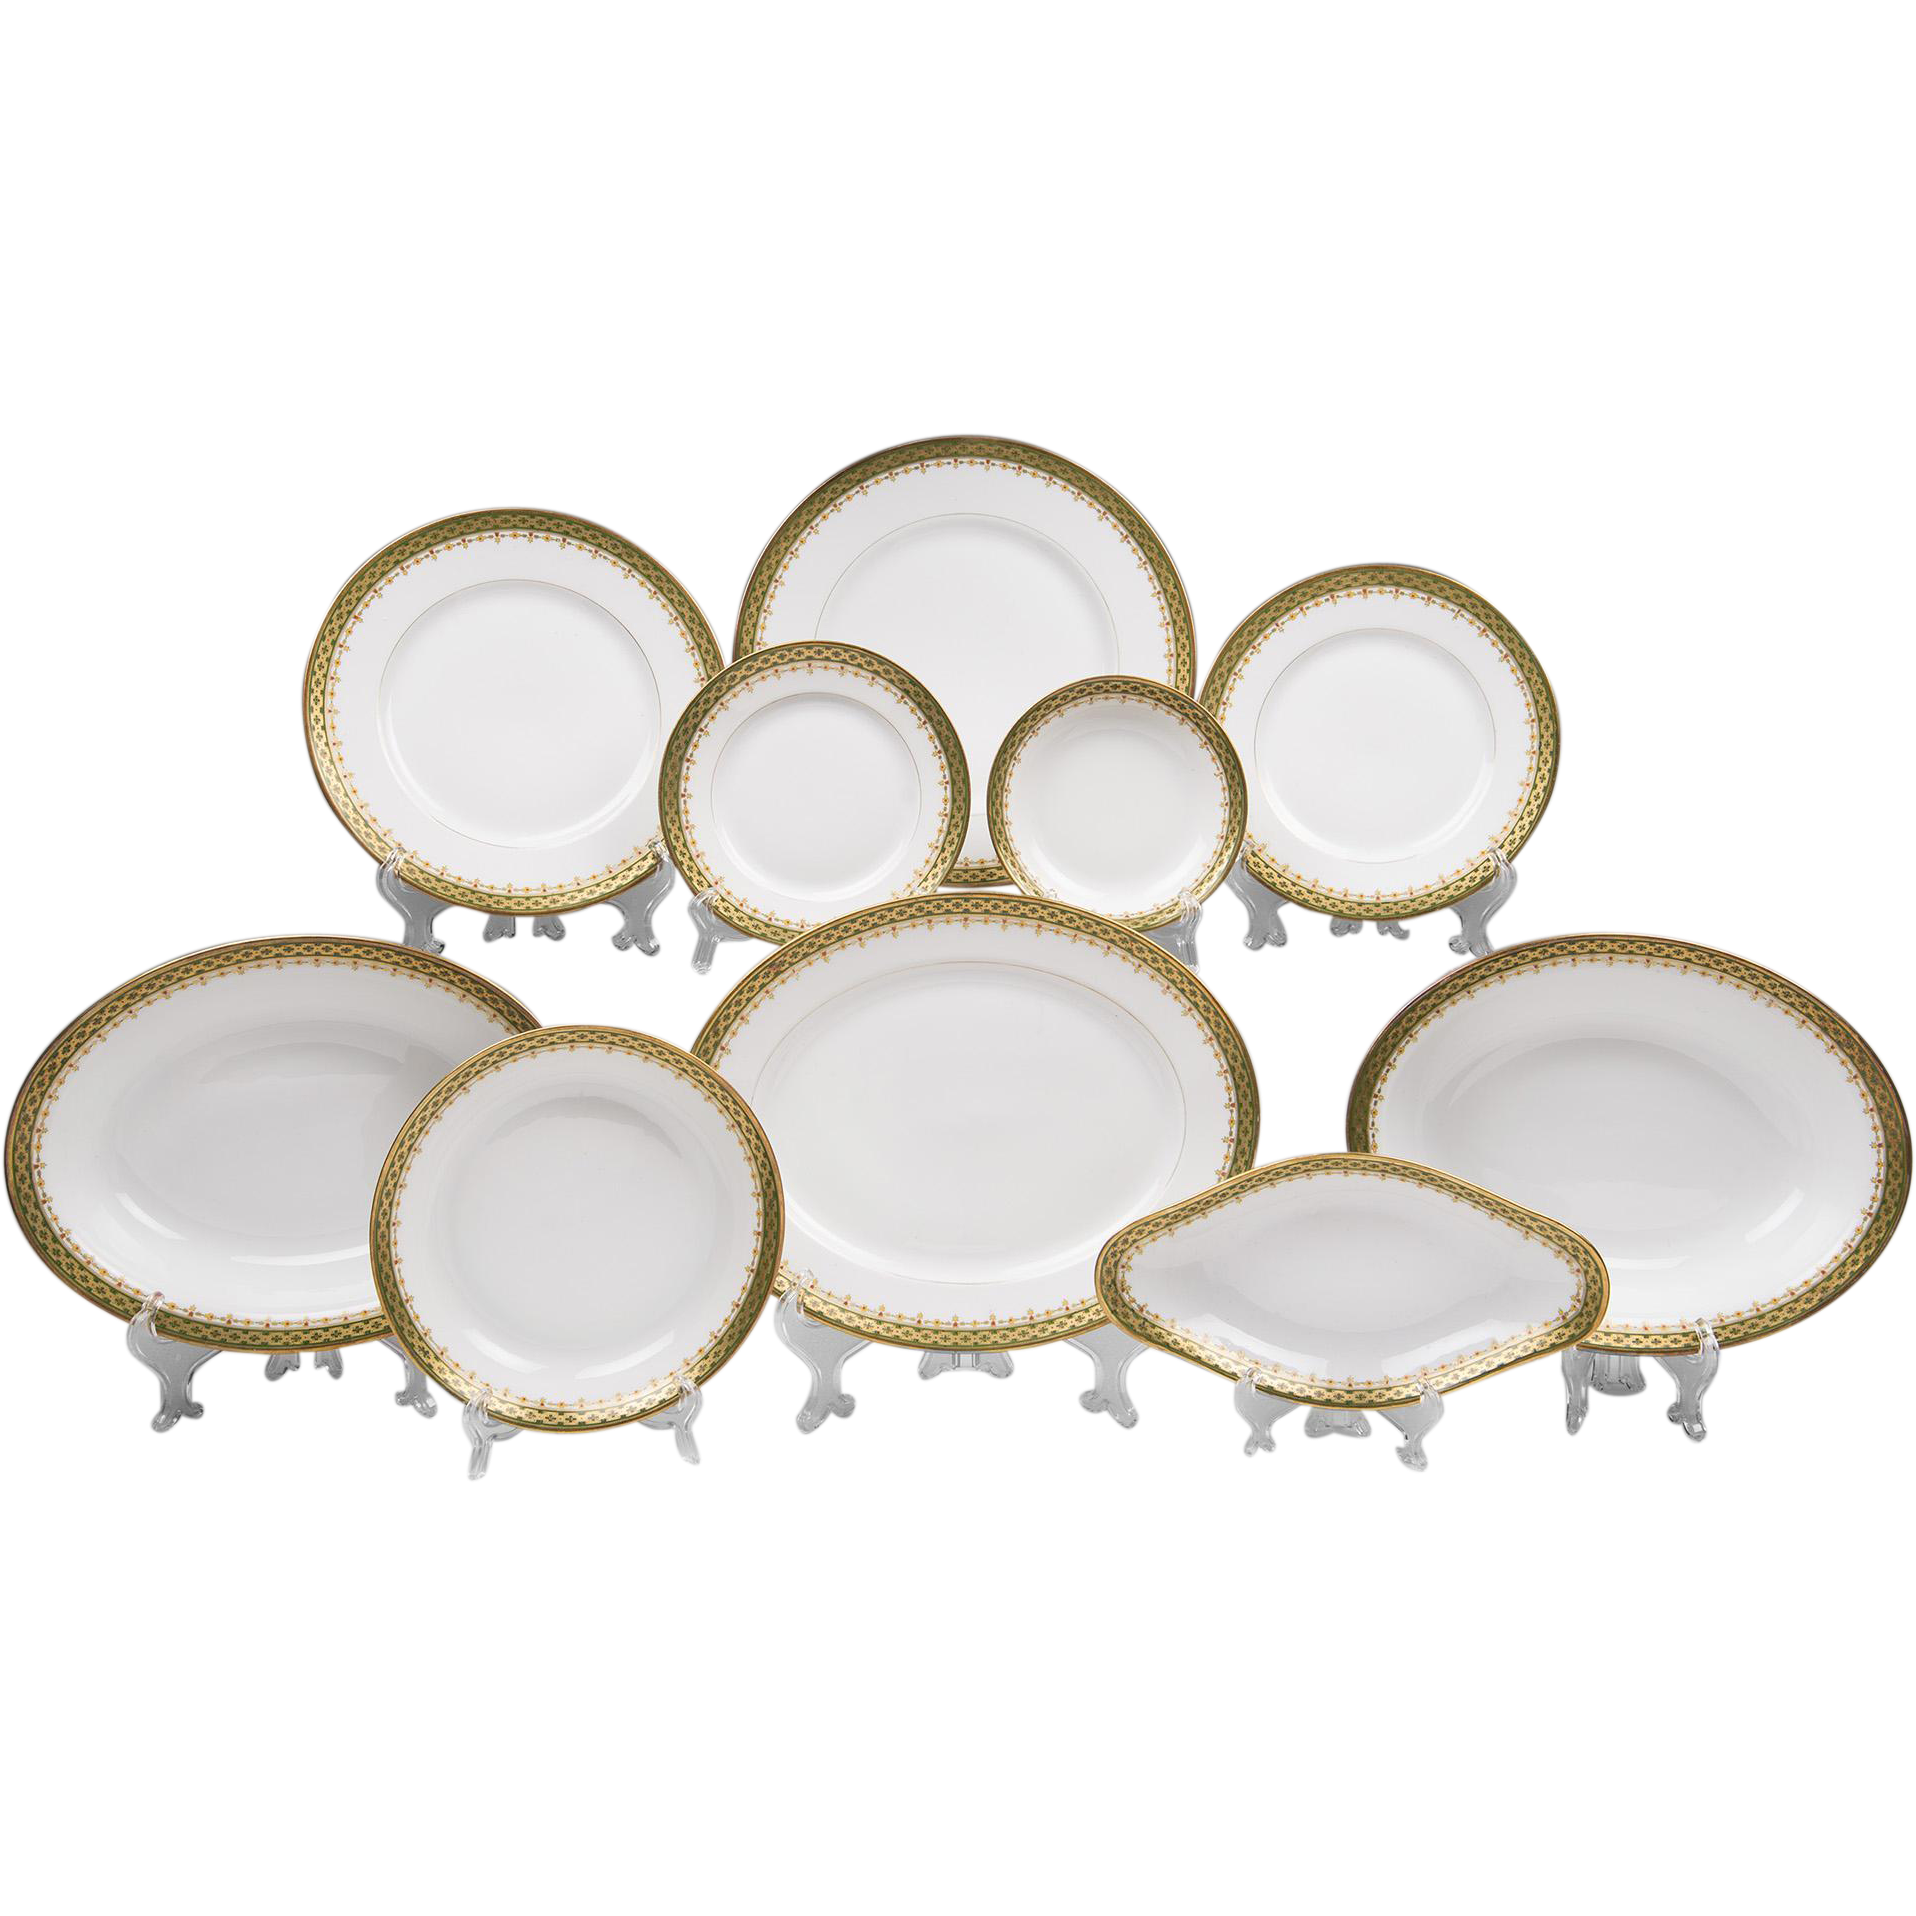 Set of 56 Pieces of French Limoges Bernardaud China